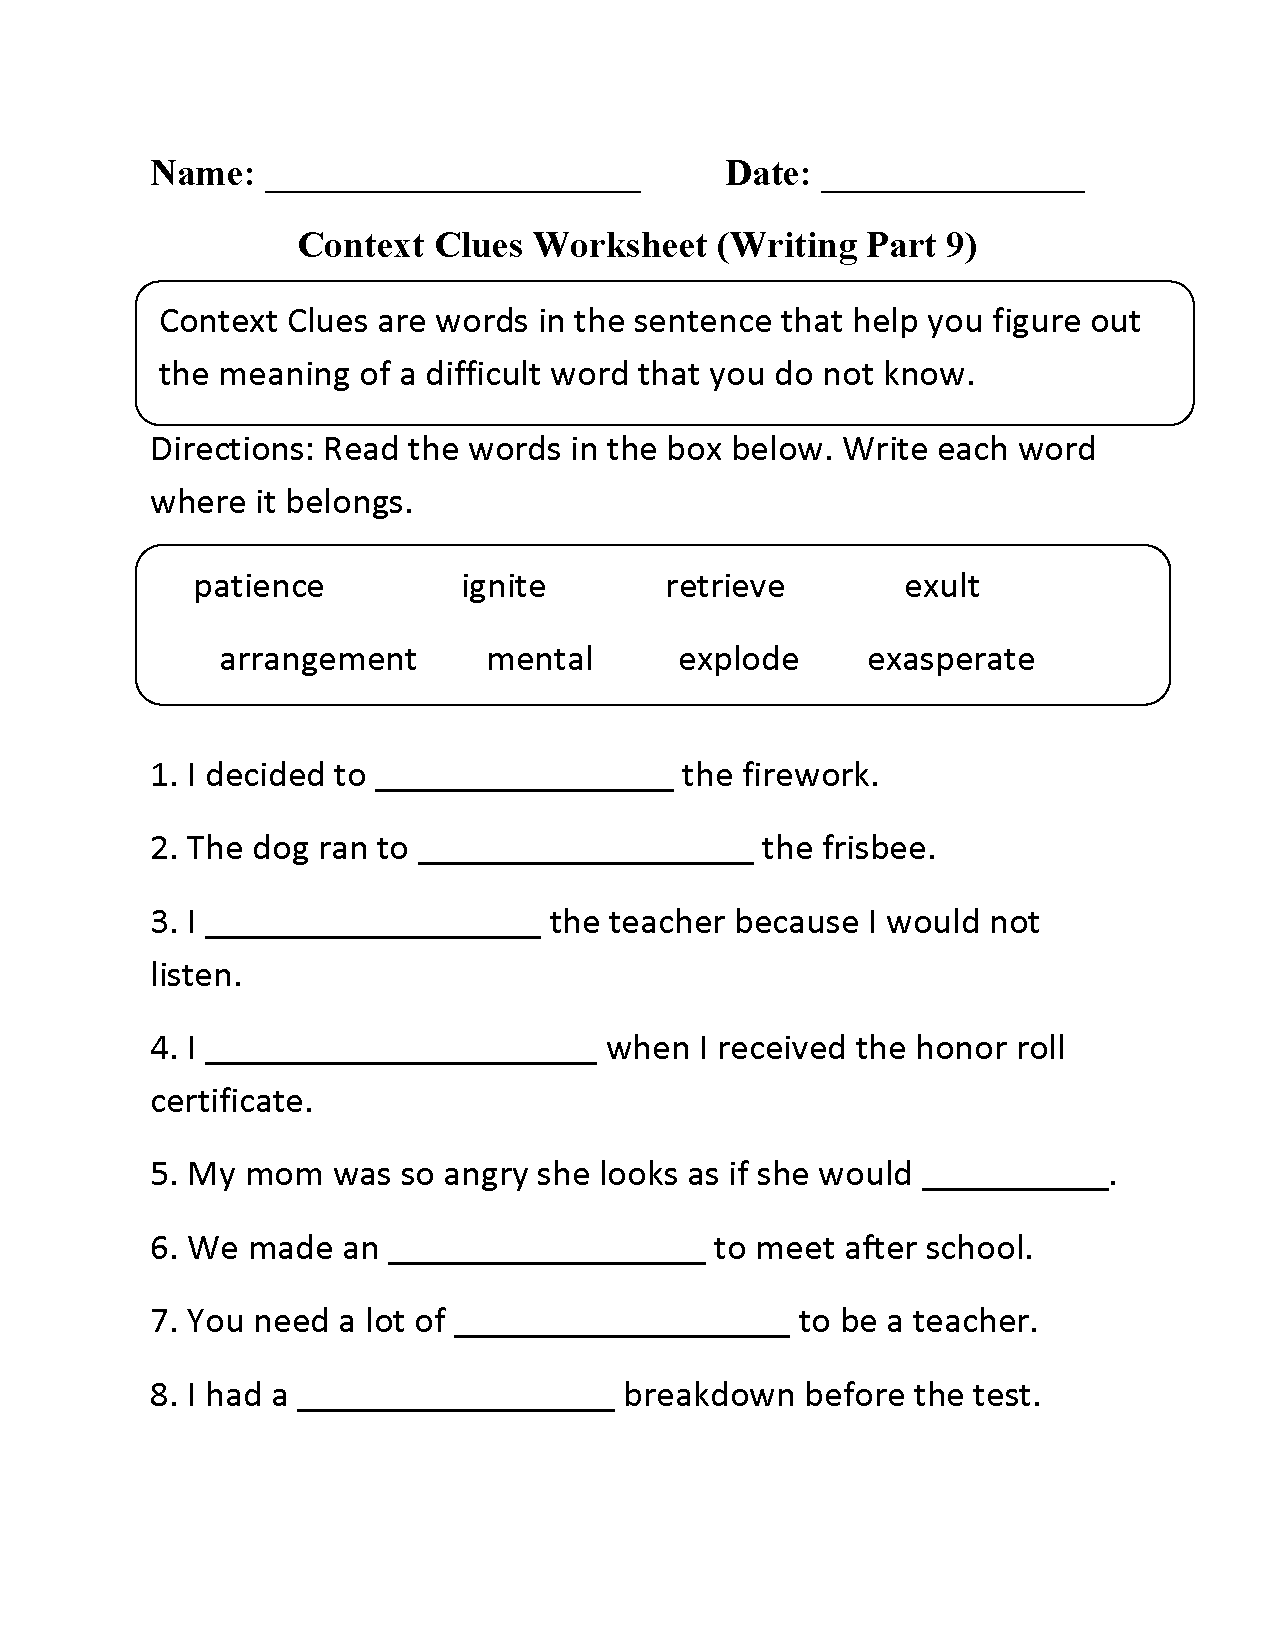 Weirdmailus  Marvelous Englishlinxcom  Context Clues Worksheets With Remarkable Context Clues Worksheet Writing Part  Intermediate With Amusing Free Printable Fall Worksheets Also Kindergarten Language Worksheets In Addition Teamwork Worksheet And Los Colores Worksheet As Well As Common Multiples Worksheet Additionally Multiply Decimals By Whole Numbers Worksheet From Englishlinxcom With Weirdmailus  Remarkable Englishlinxcom  Context Clues Worksheets With Amusing Context Clues Worksheet Writing Part  Intermediate And Marvelous Free Printable Fall Worksheets Also Kindergarten Language Worksheets In Addition Teamwork Worksheet From Englishlinxcom